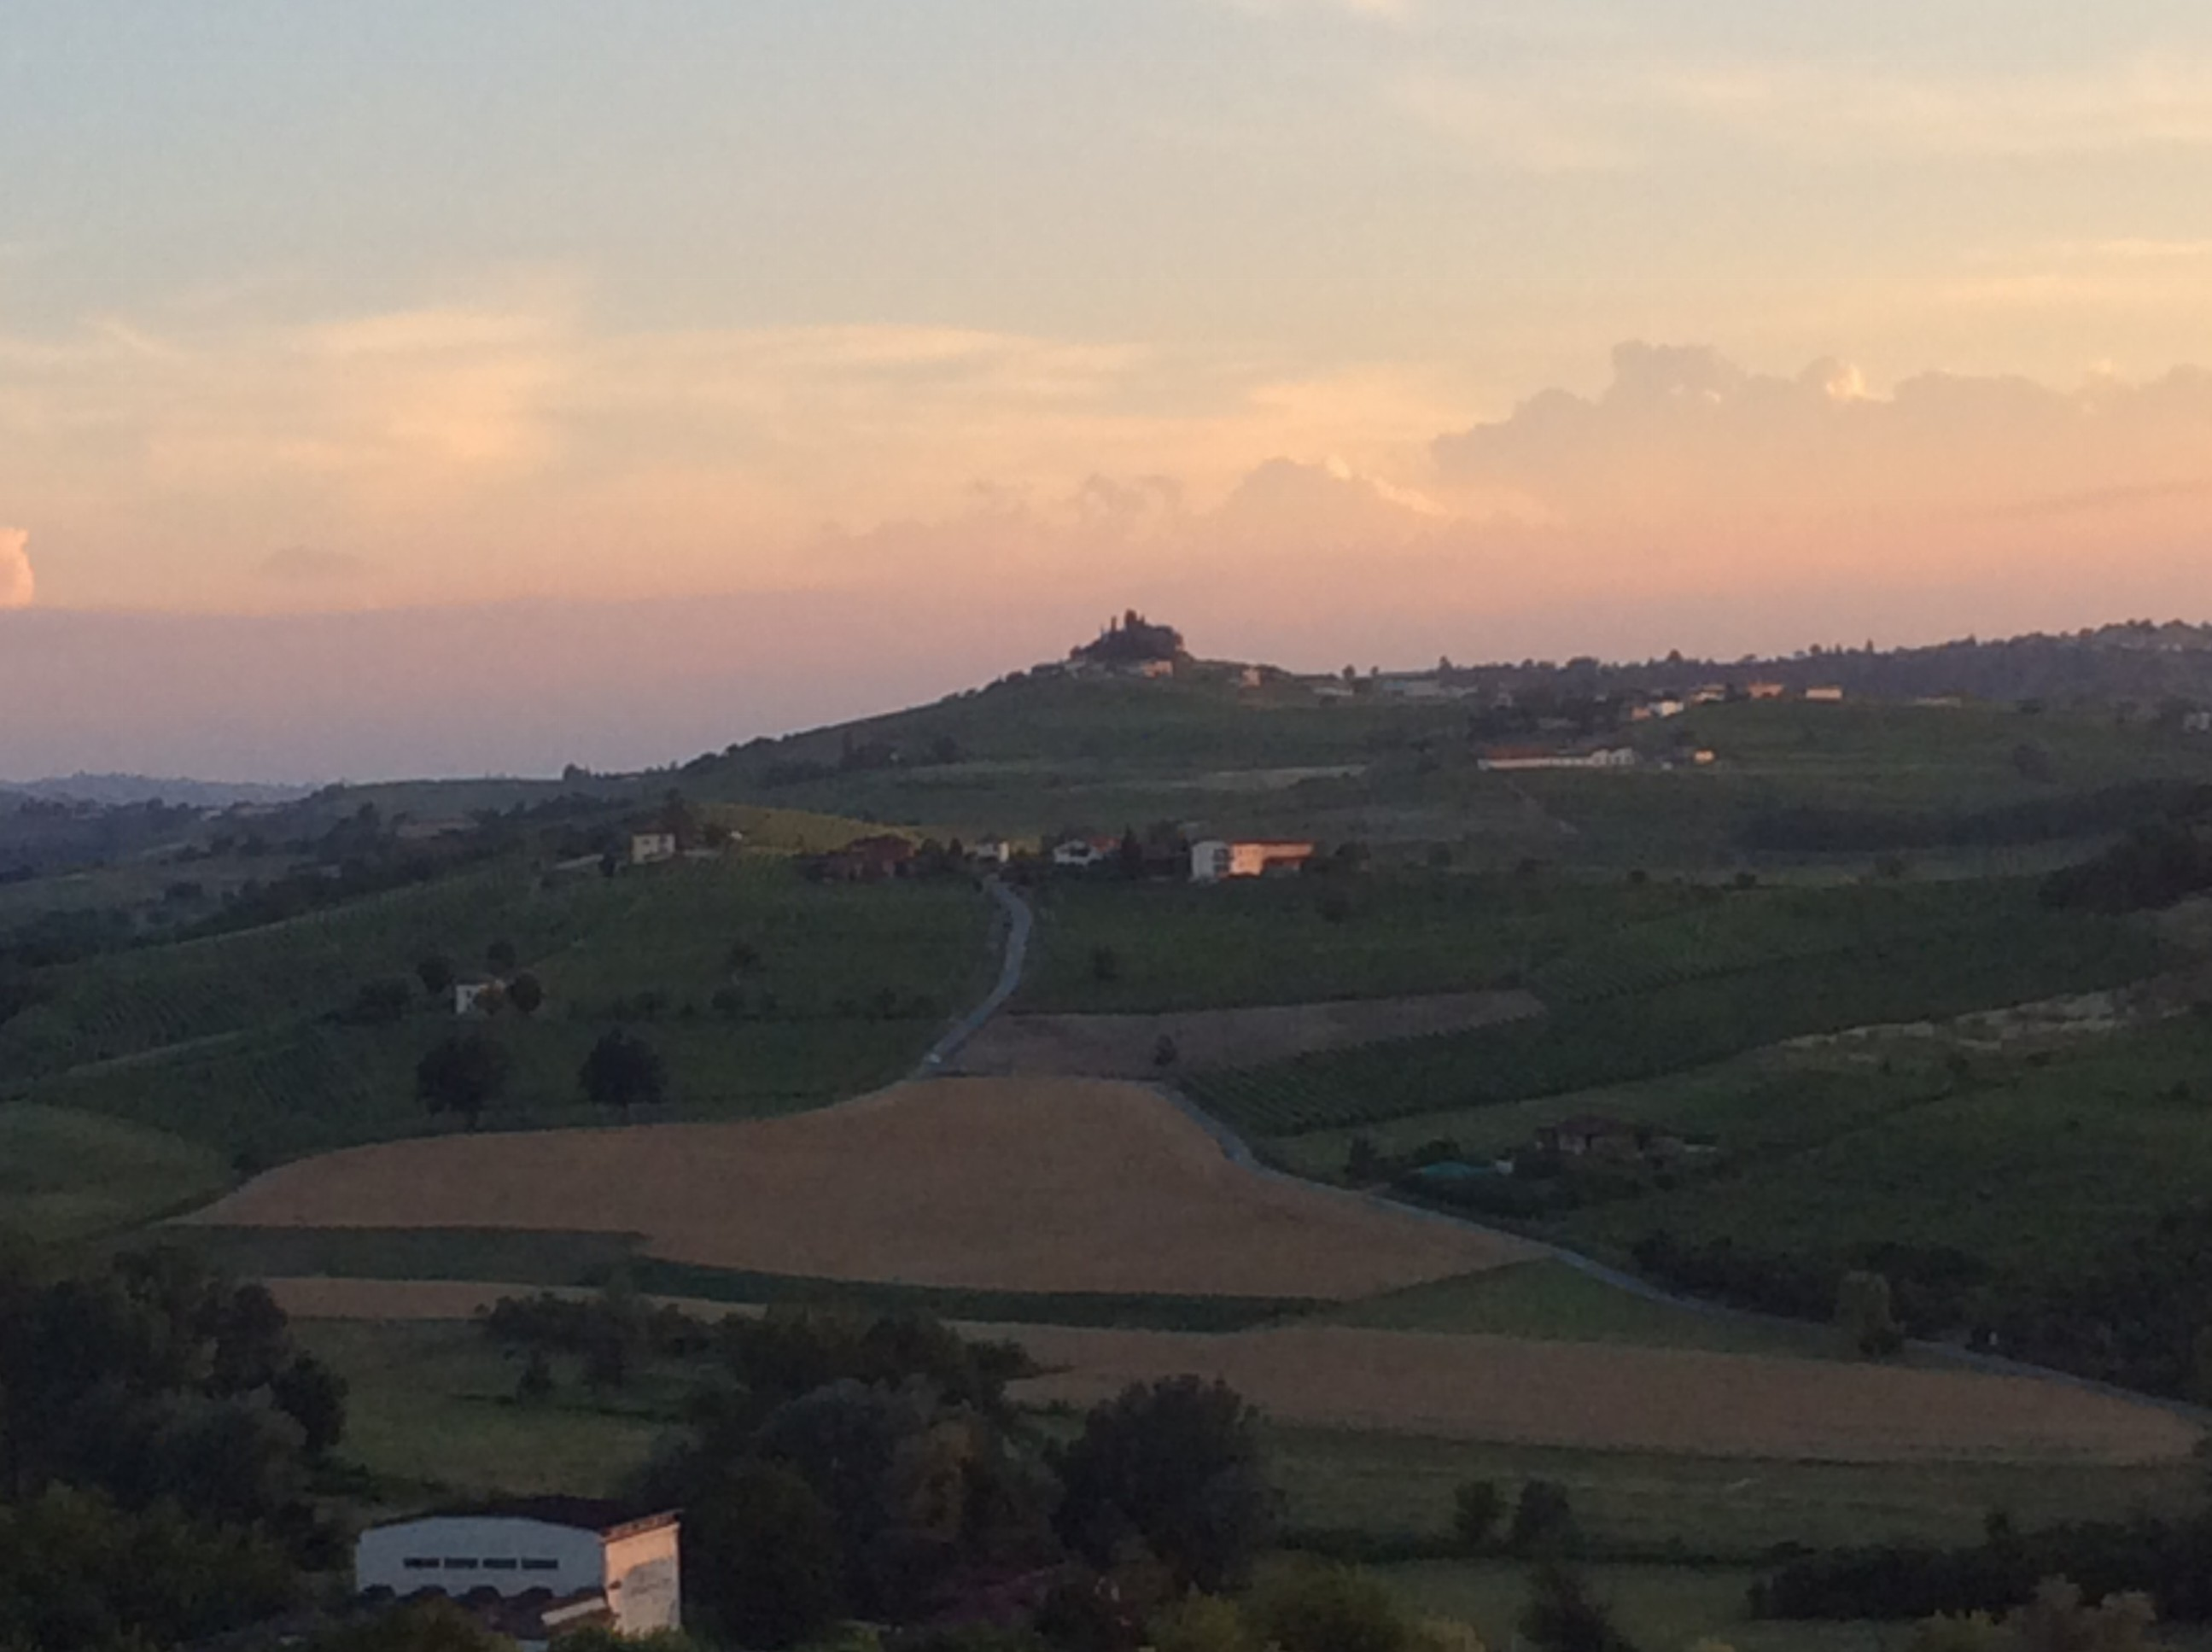 Our view of a nearby from the terrace where ate  dinner on our last night in Italy